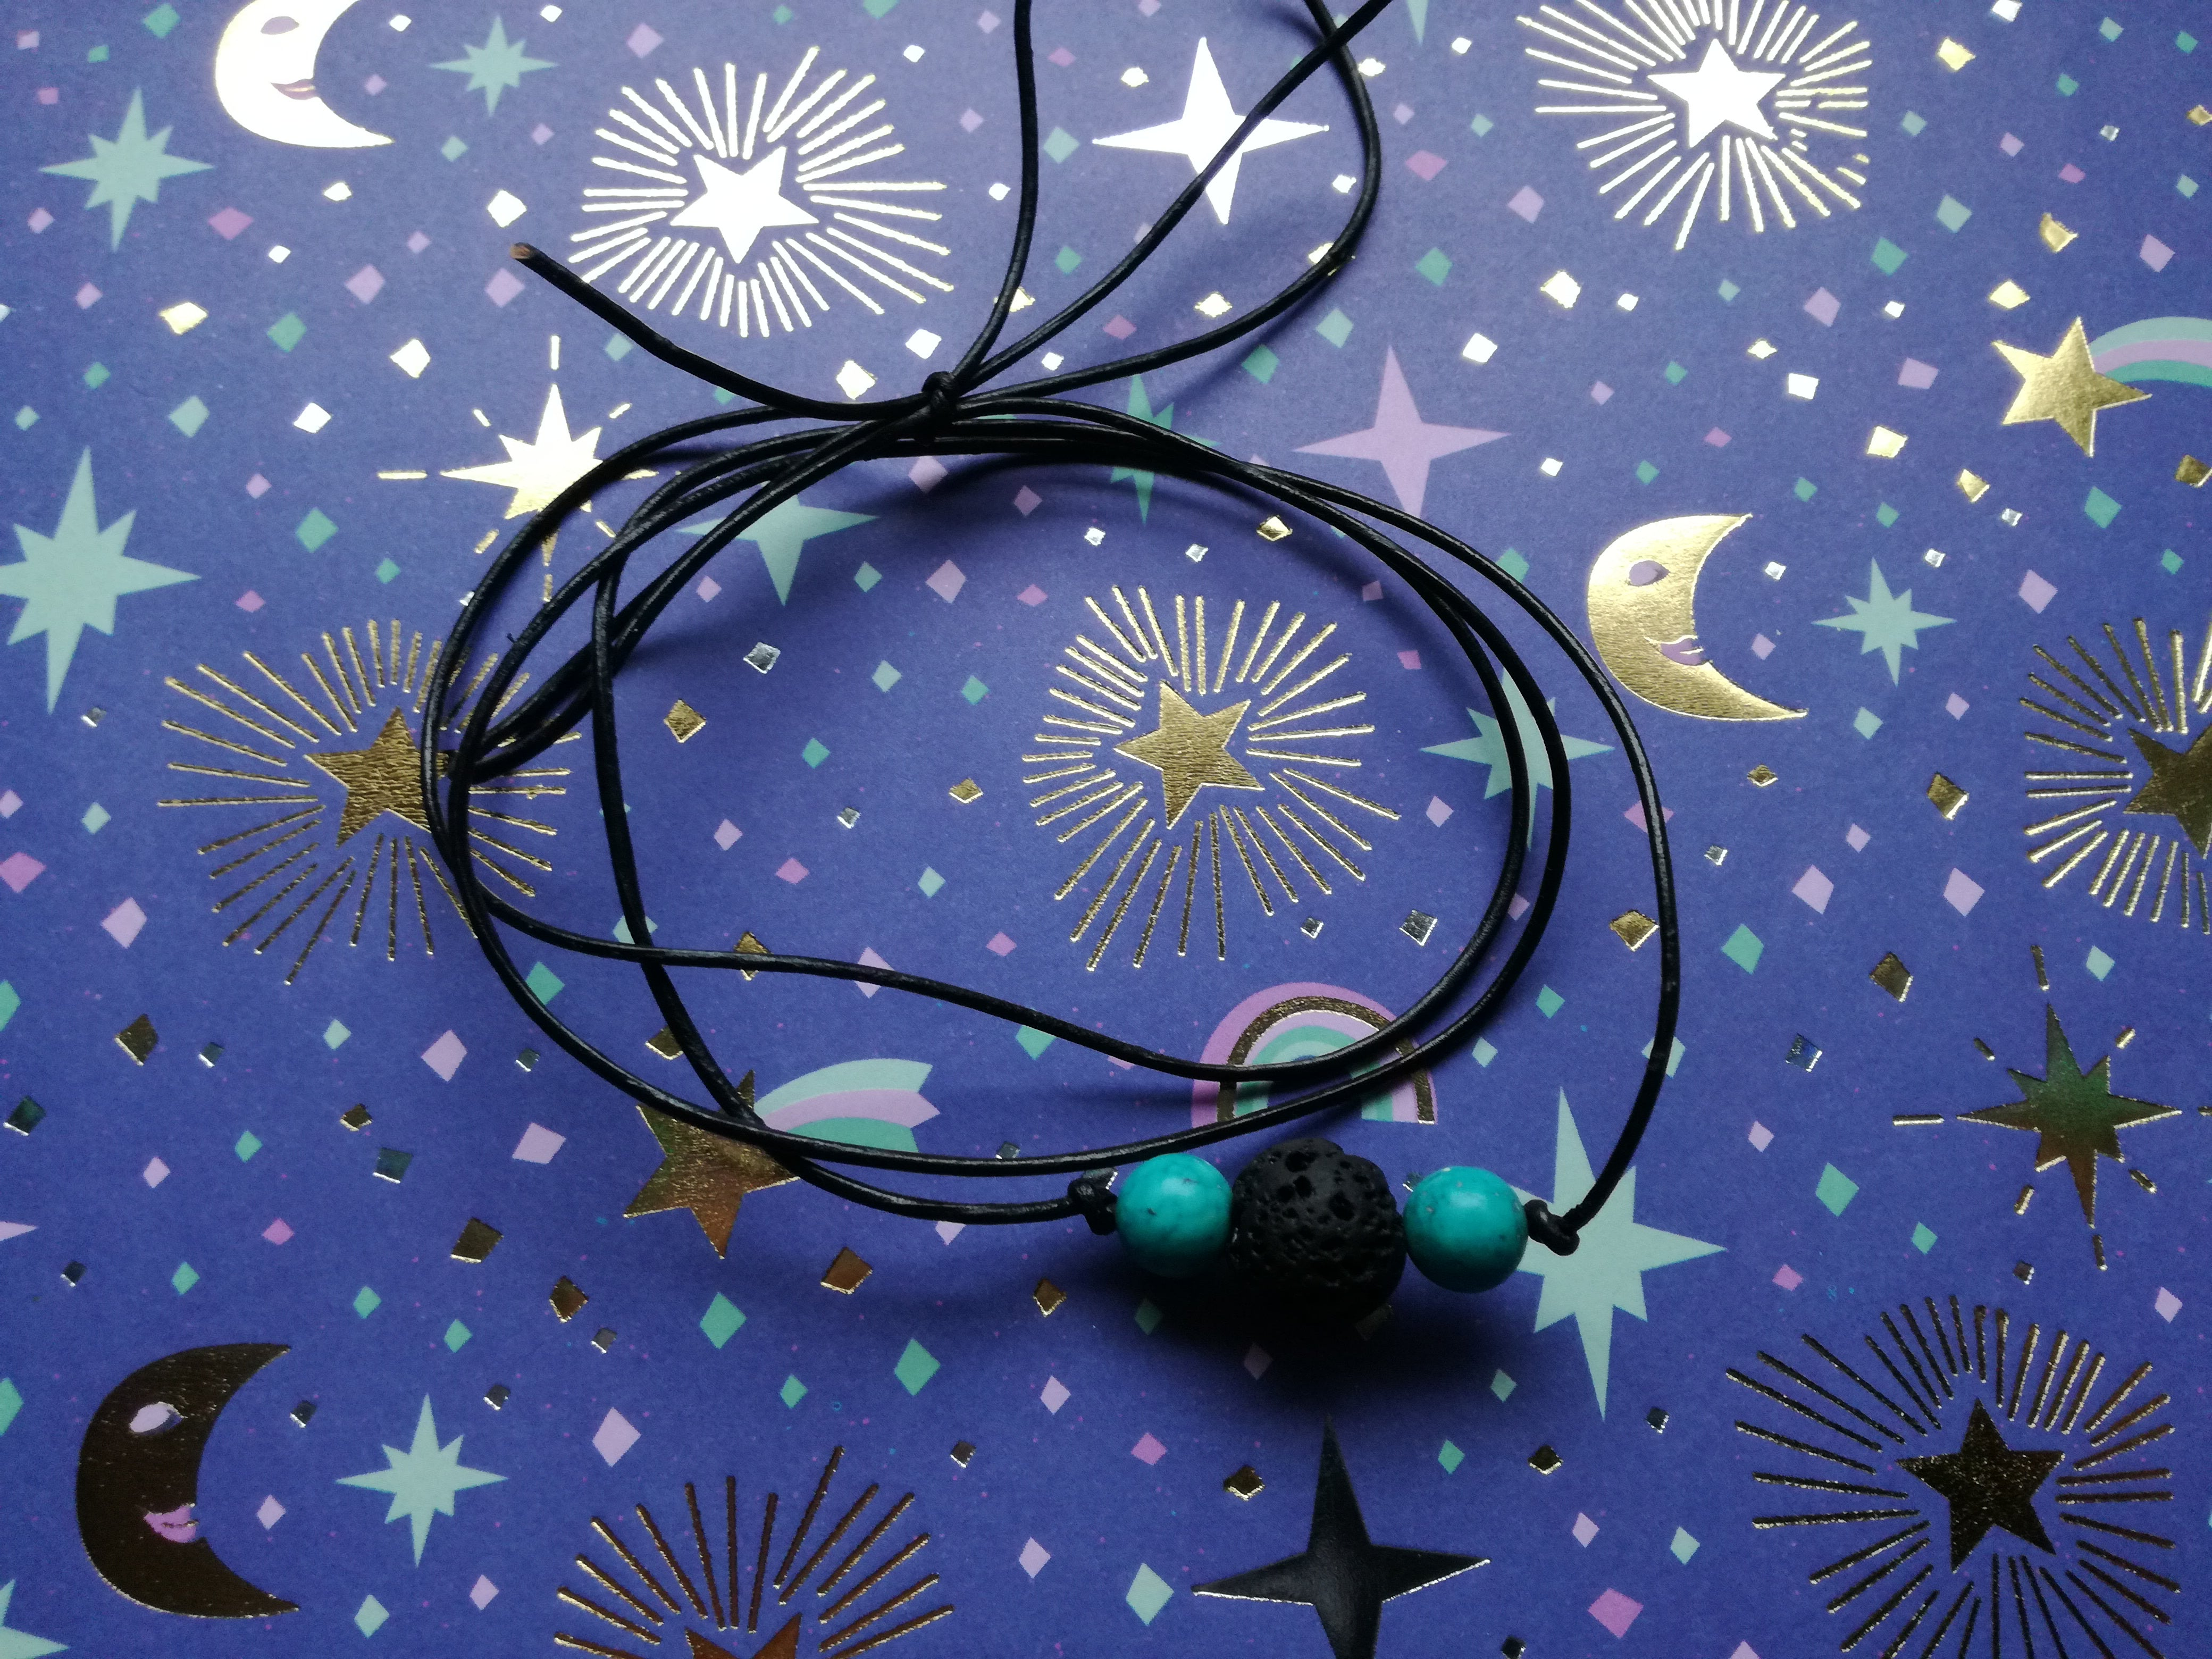 choker necklace black leather cord 2 coloured beads altodiversi free